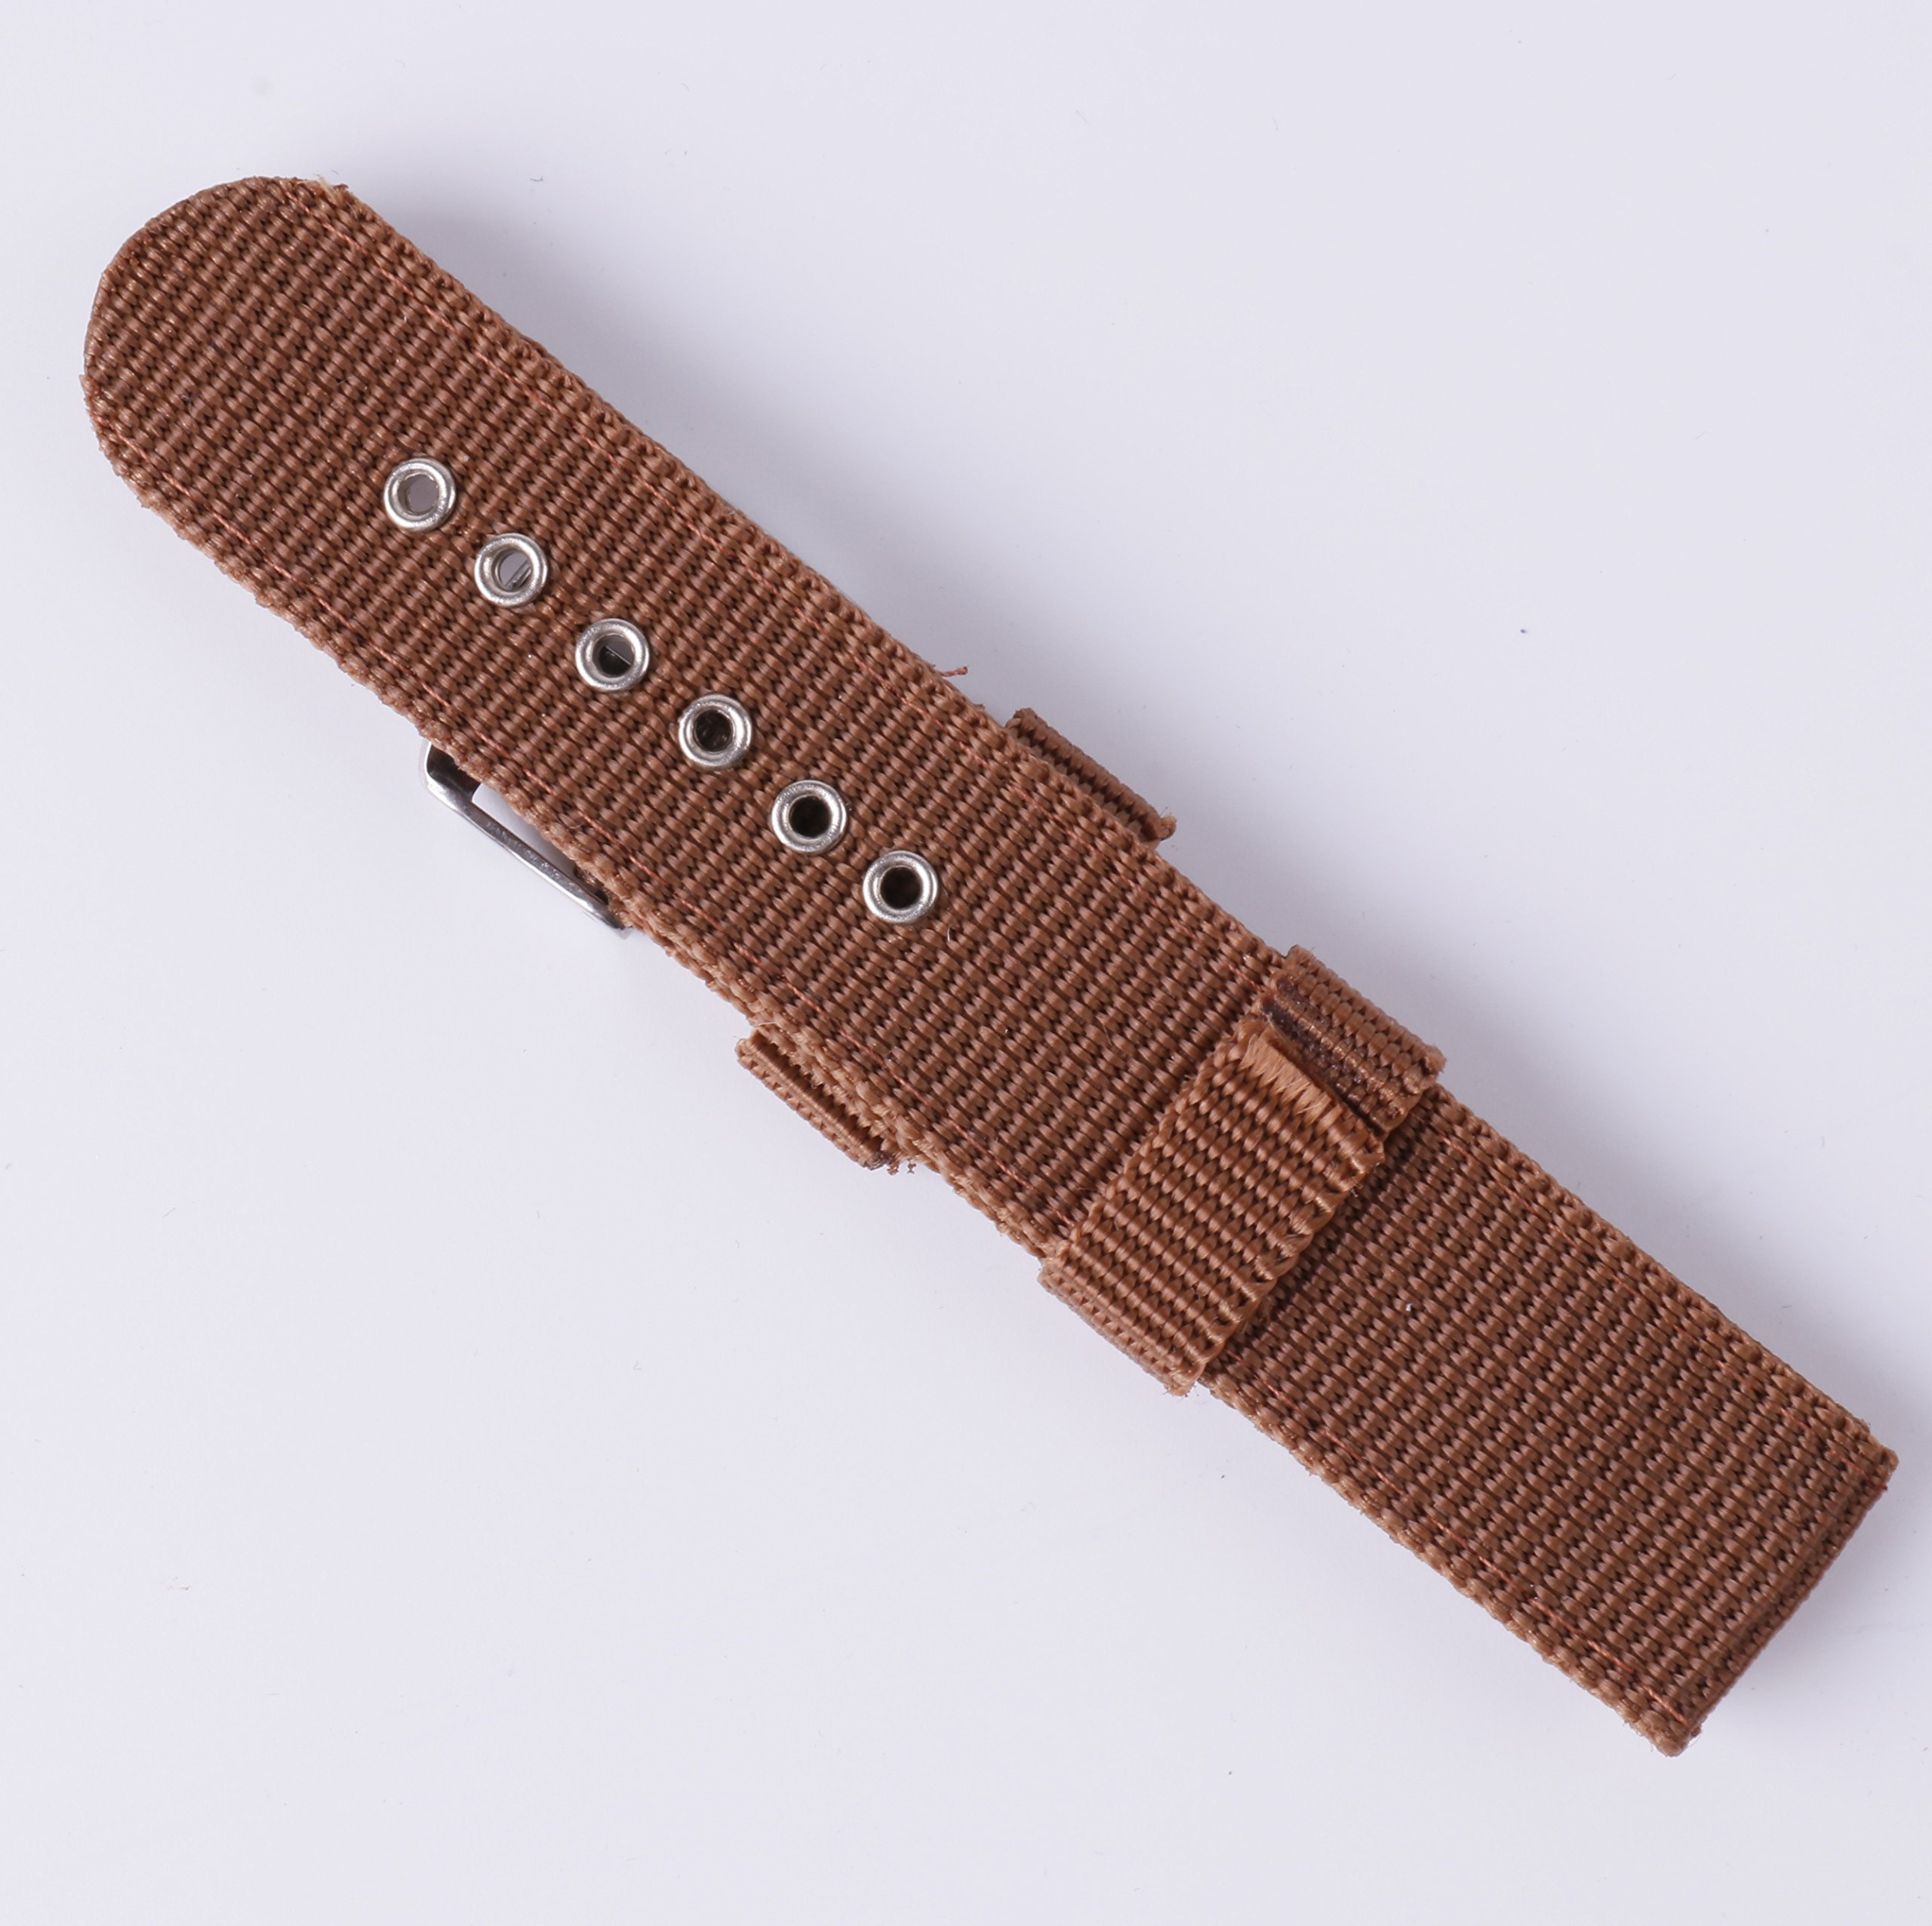 4pcs Nylon Watch Bands 16mm 18mm 20mm 22mm 24mm Premium Replacement NATO Style Watch Straps for Women Men by BONSTRAP (Image #5)